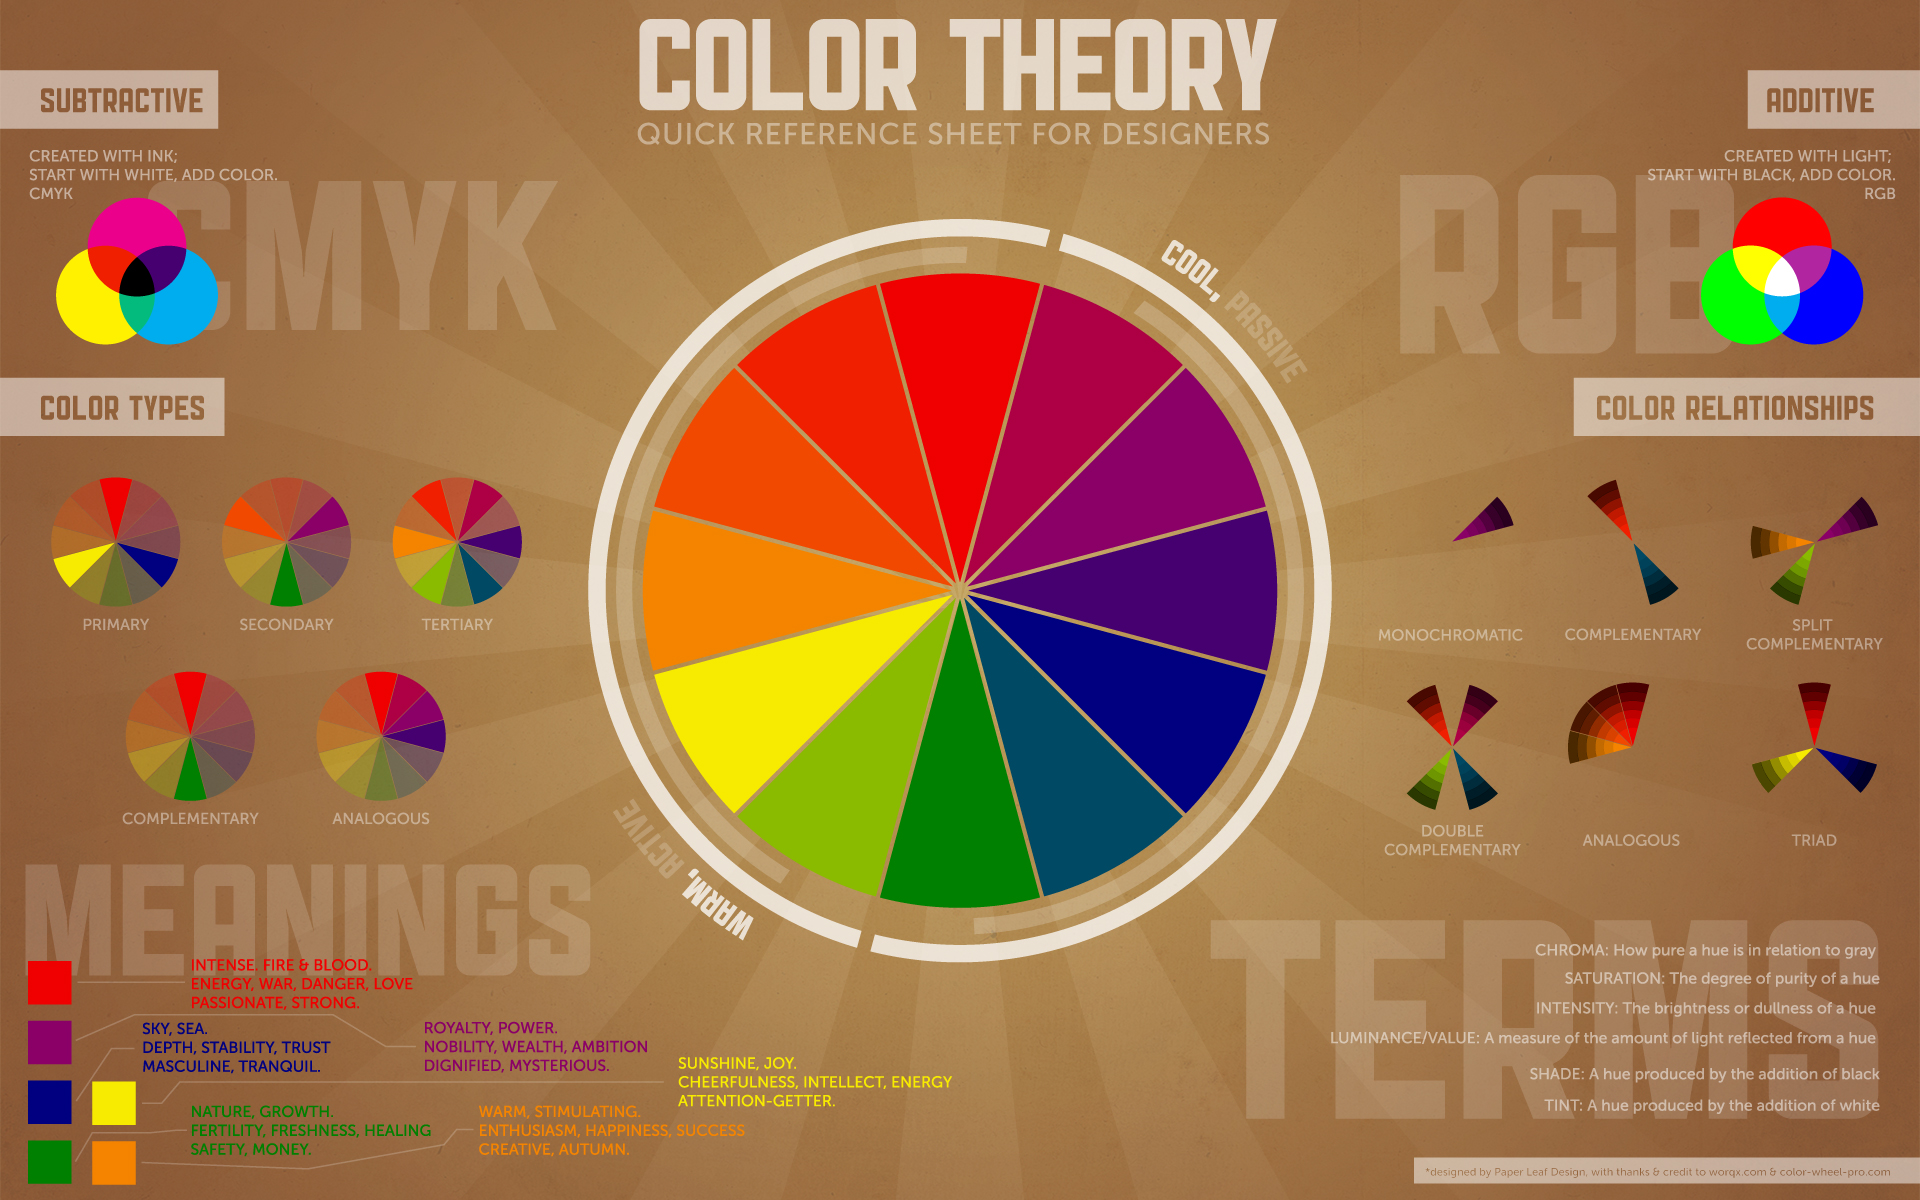 Color Theory Infographic from paper-leaf.com - a great overview!